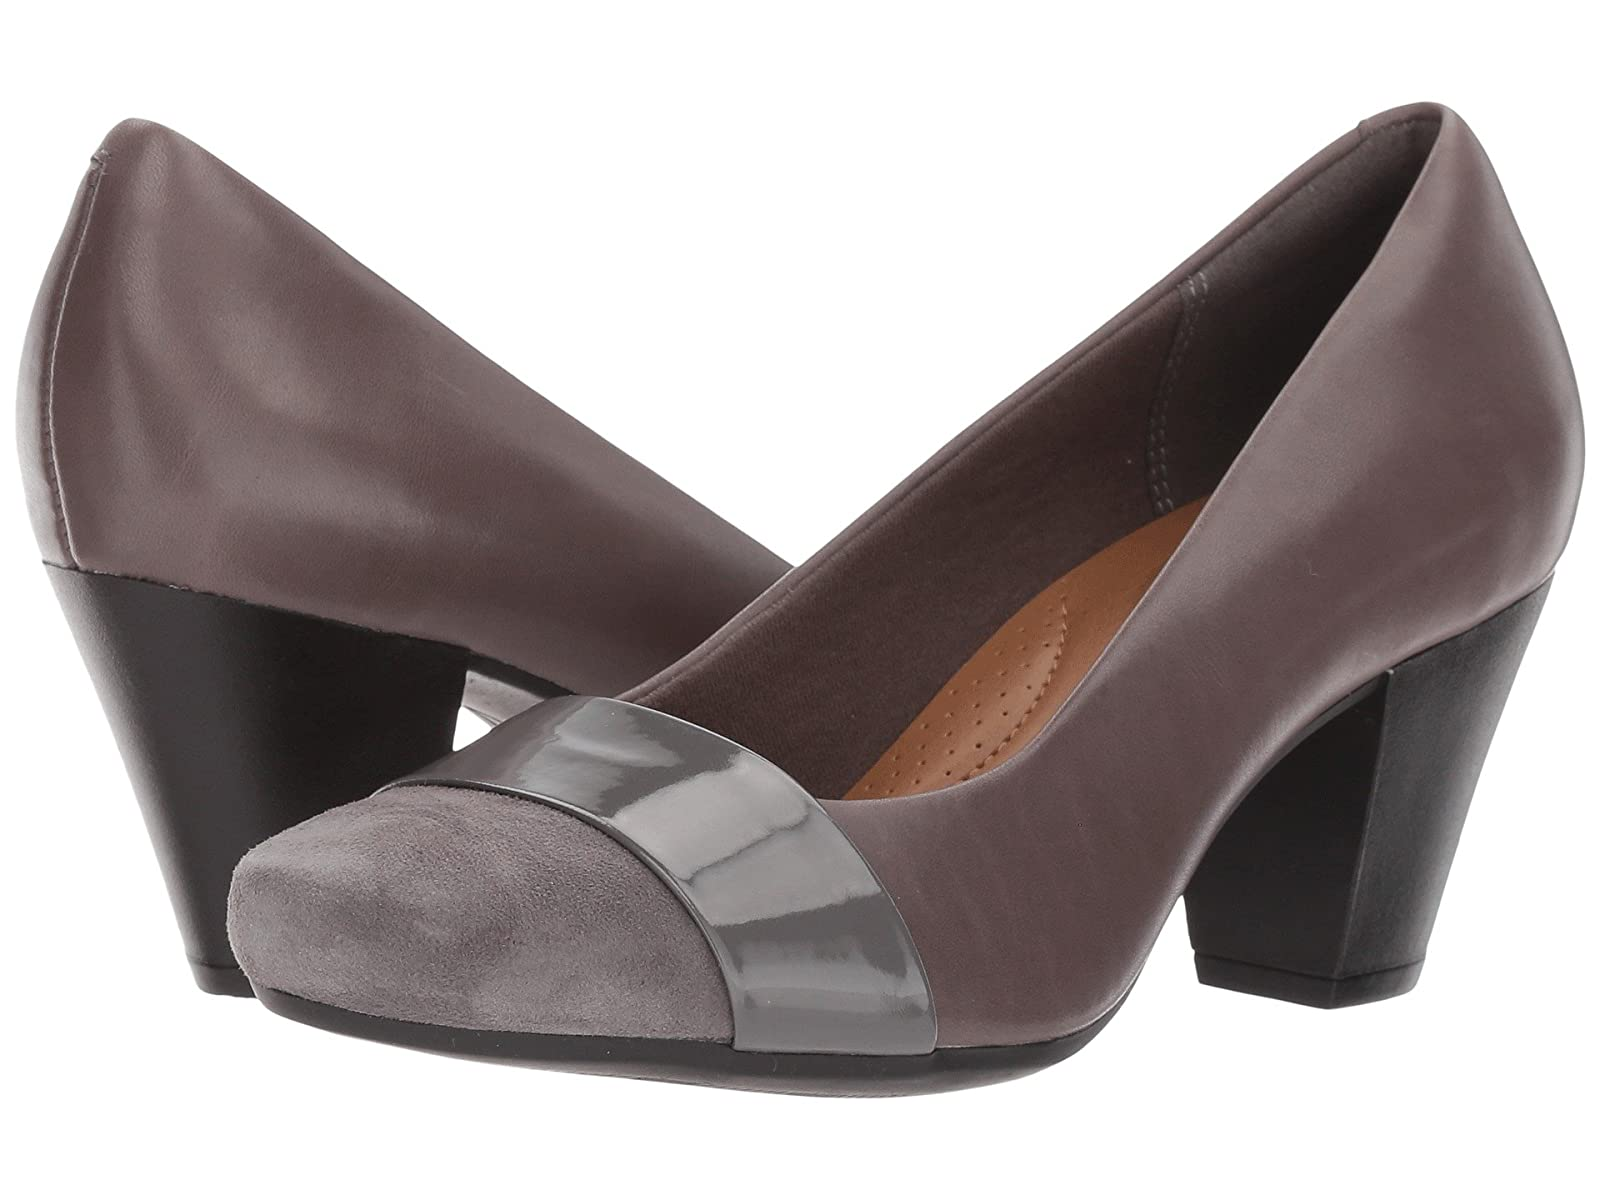 Clarks Garnit LuciaCheap and distinctive eye-catching shoes